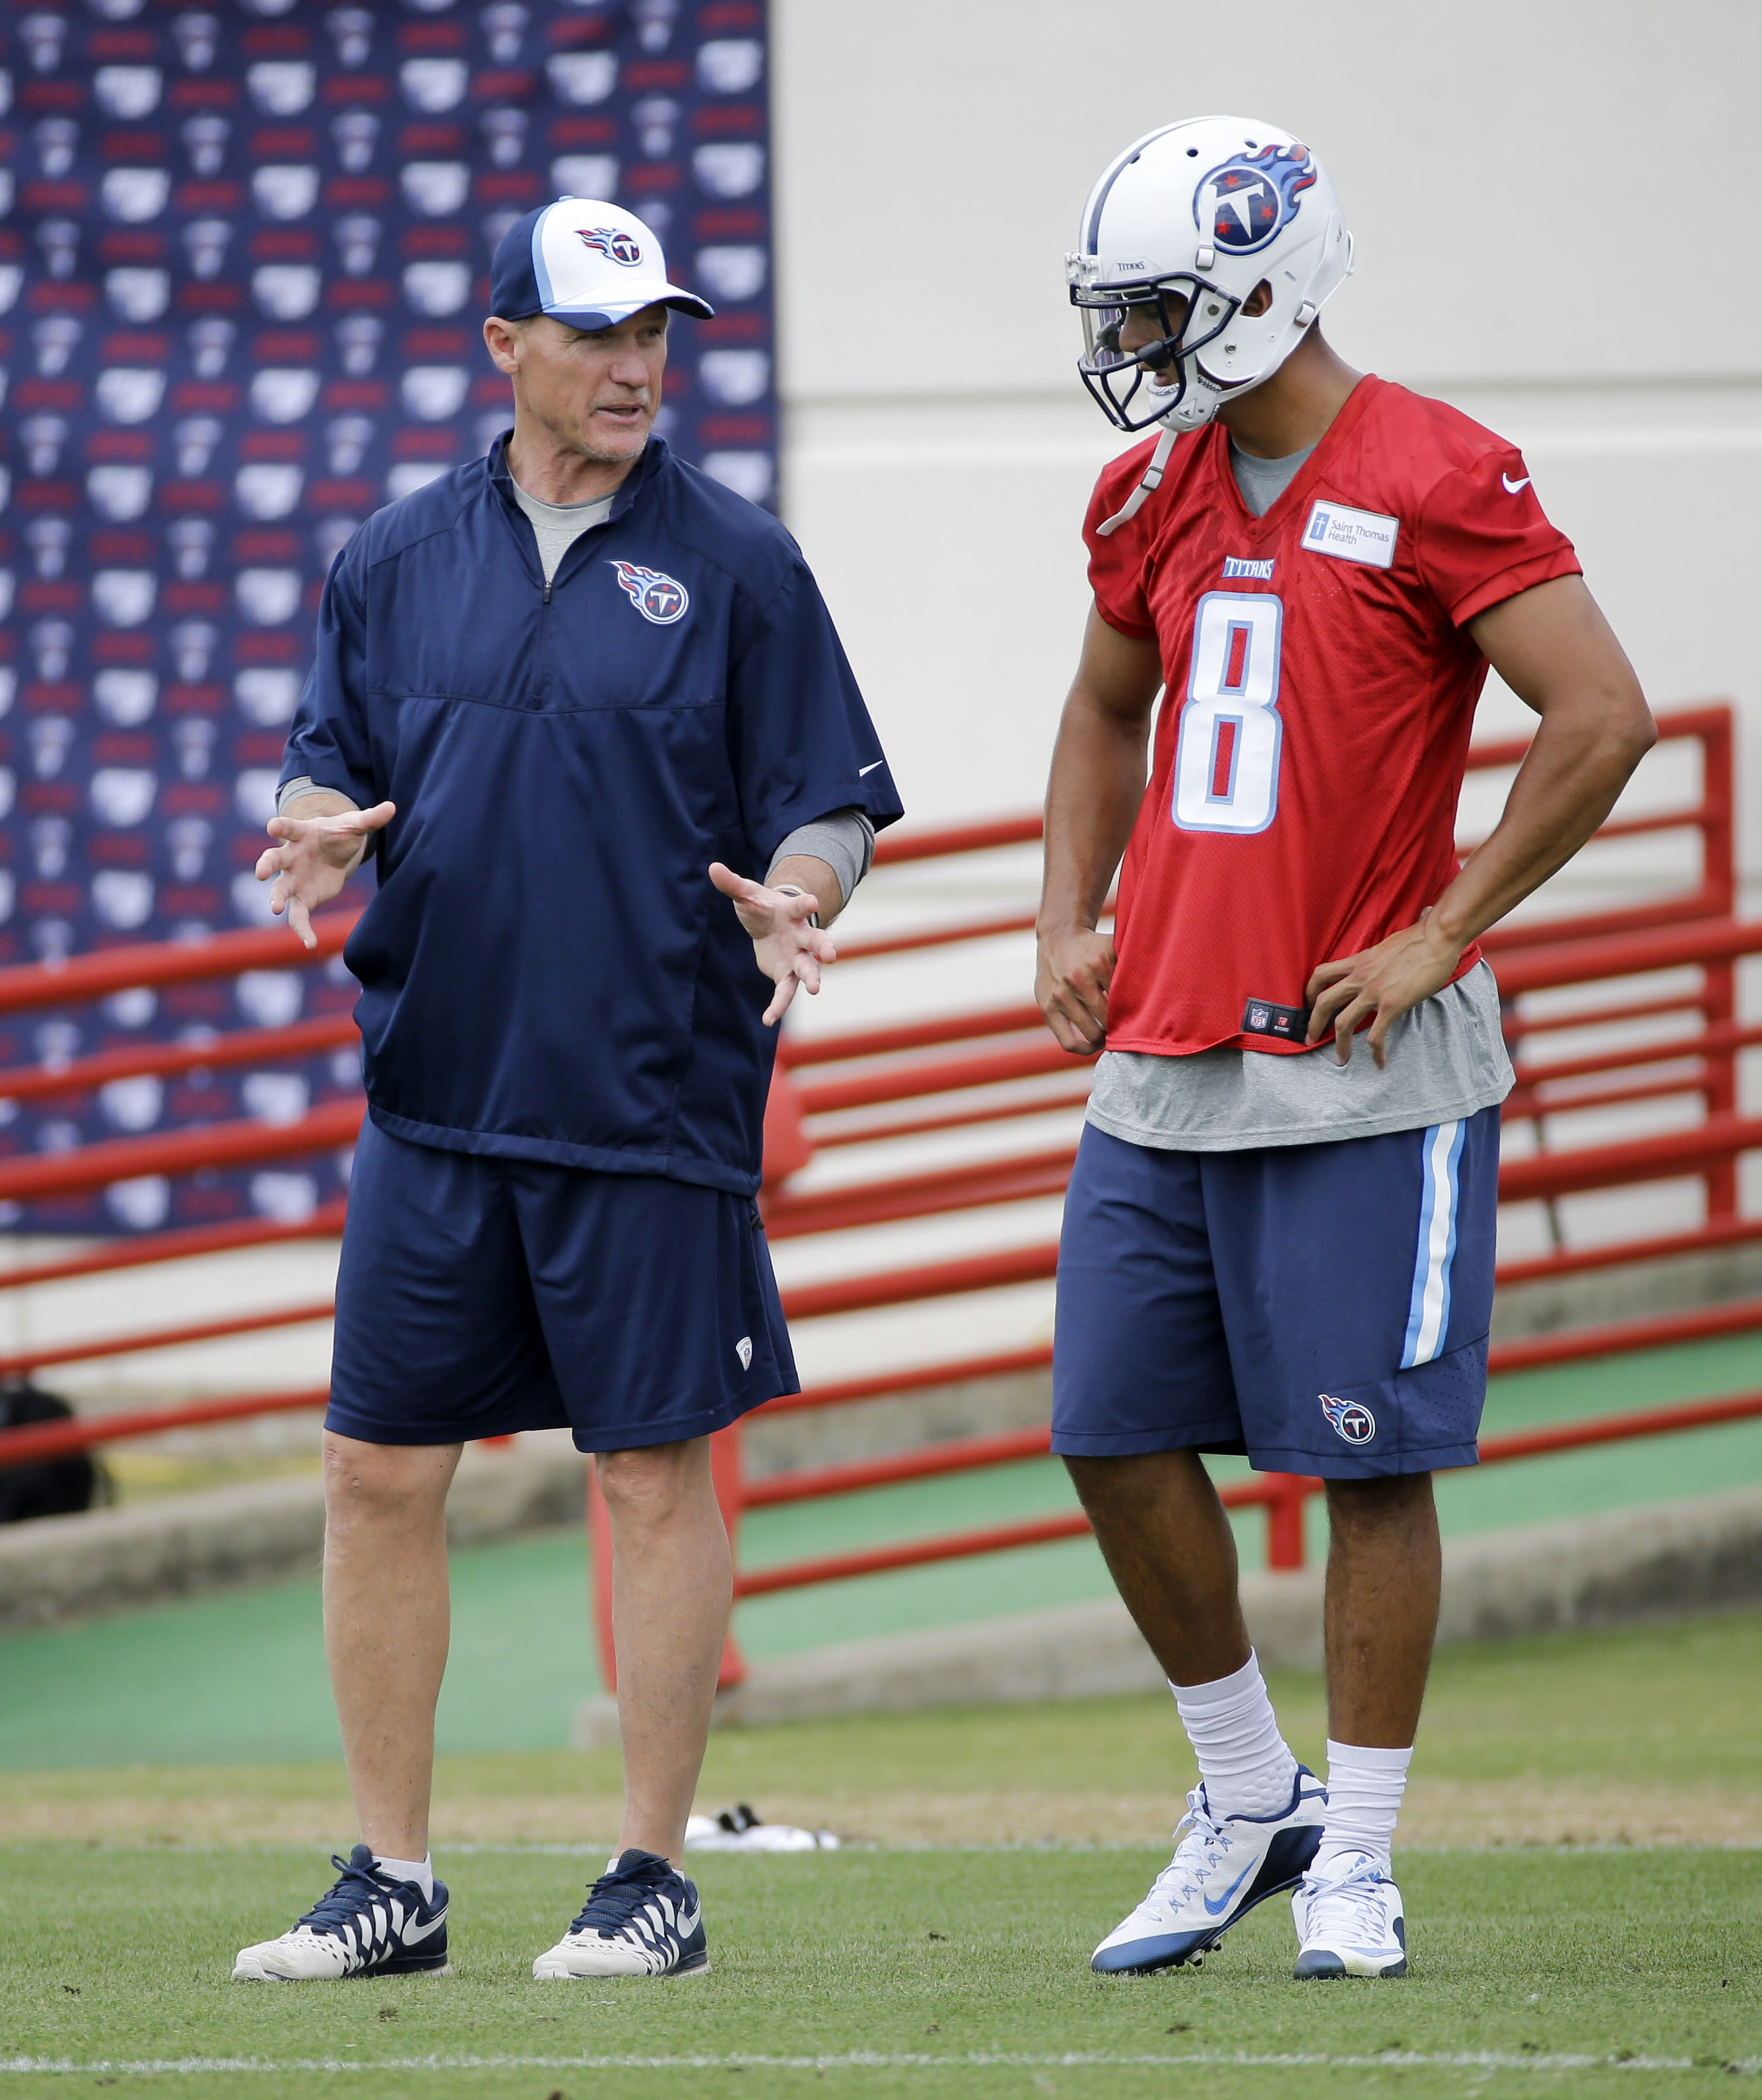 Greg Cosell's NFL analysis: The Titans' long-term plan with Mariota